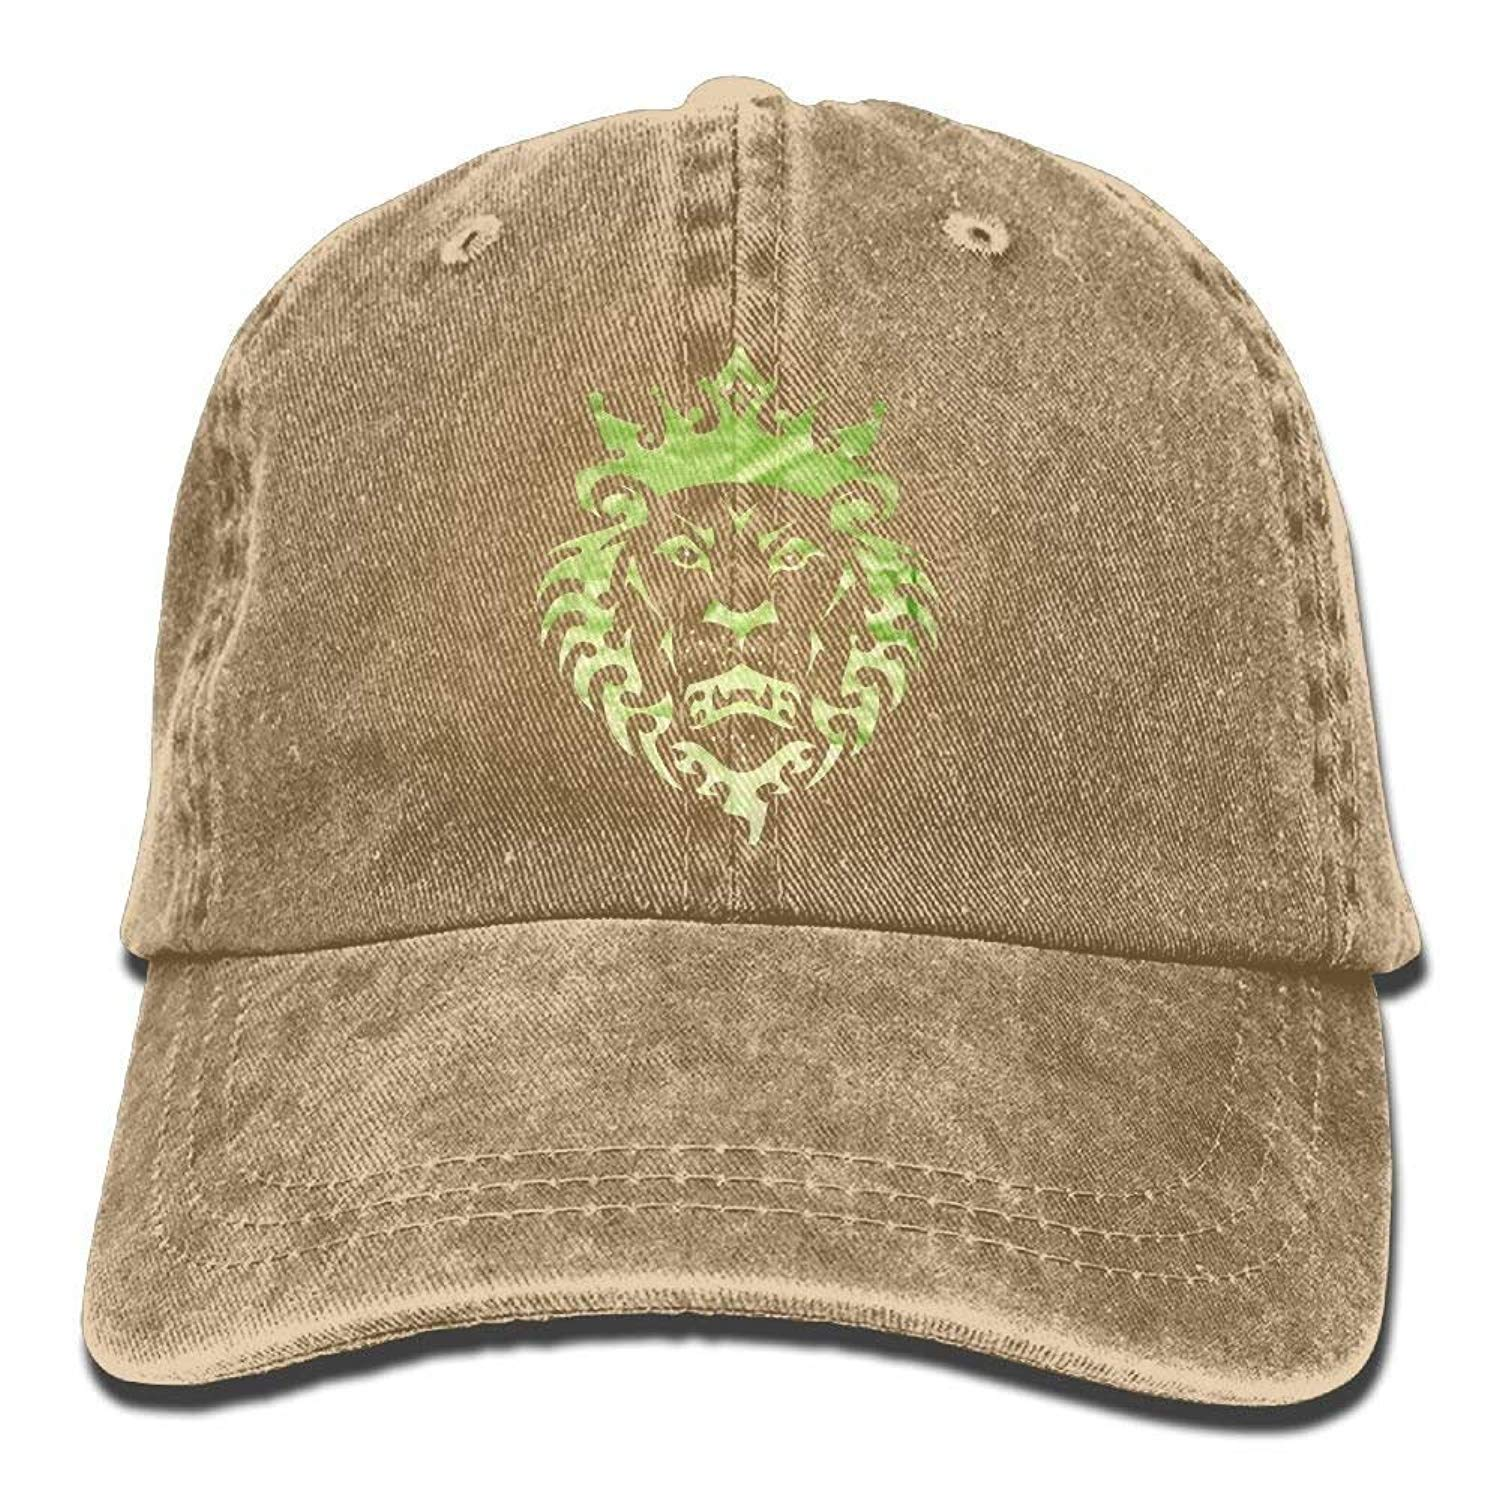 JTRVW Lebron Lion Logo Adult Cowboy Hat Baseball Cap Adjustable Athletic Make Your Own Vintage Hat for Men and Women